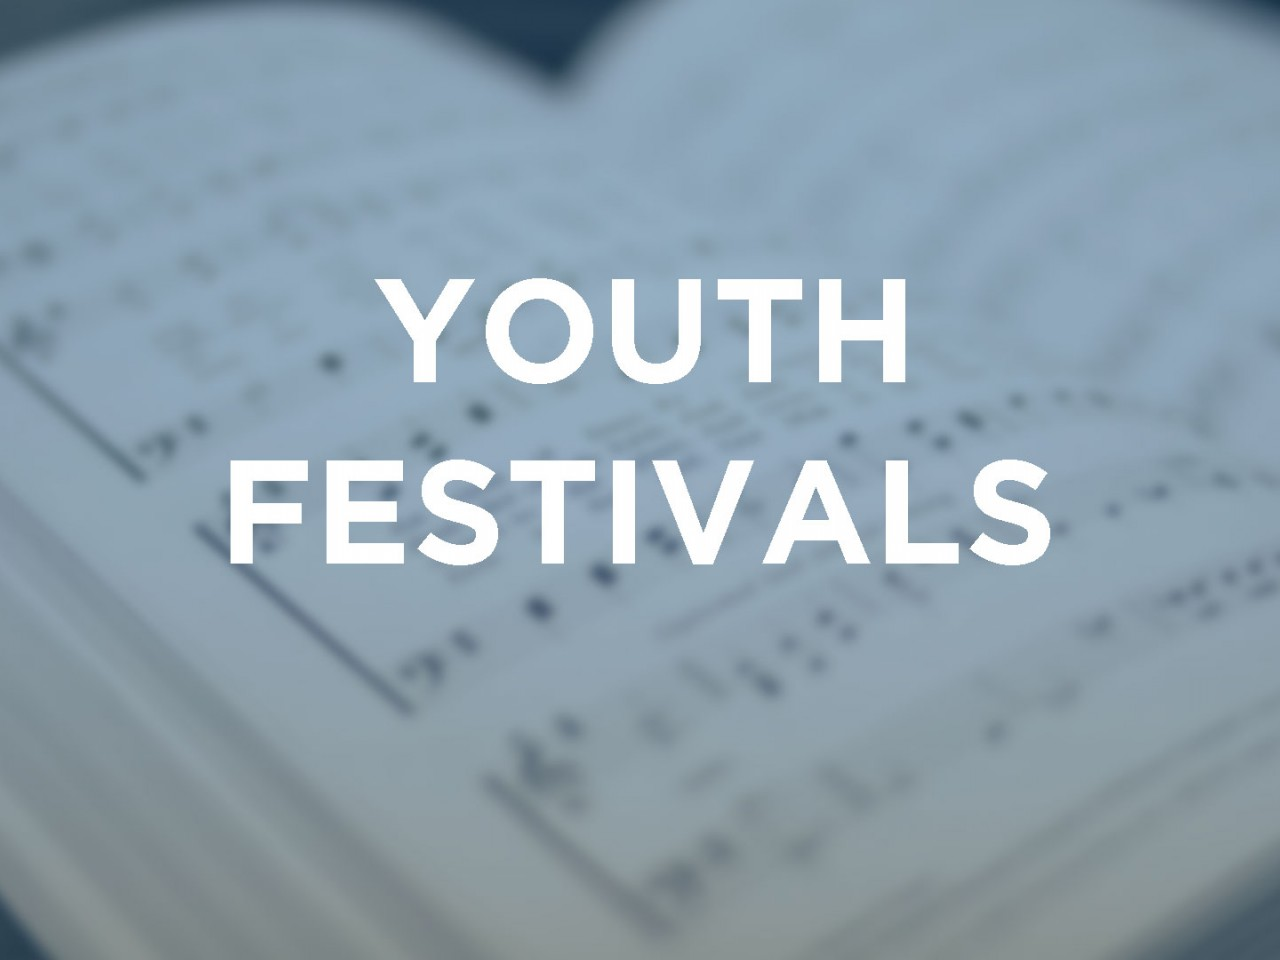 YOUTH FESTIVALS AND COMPETITIONS